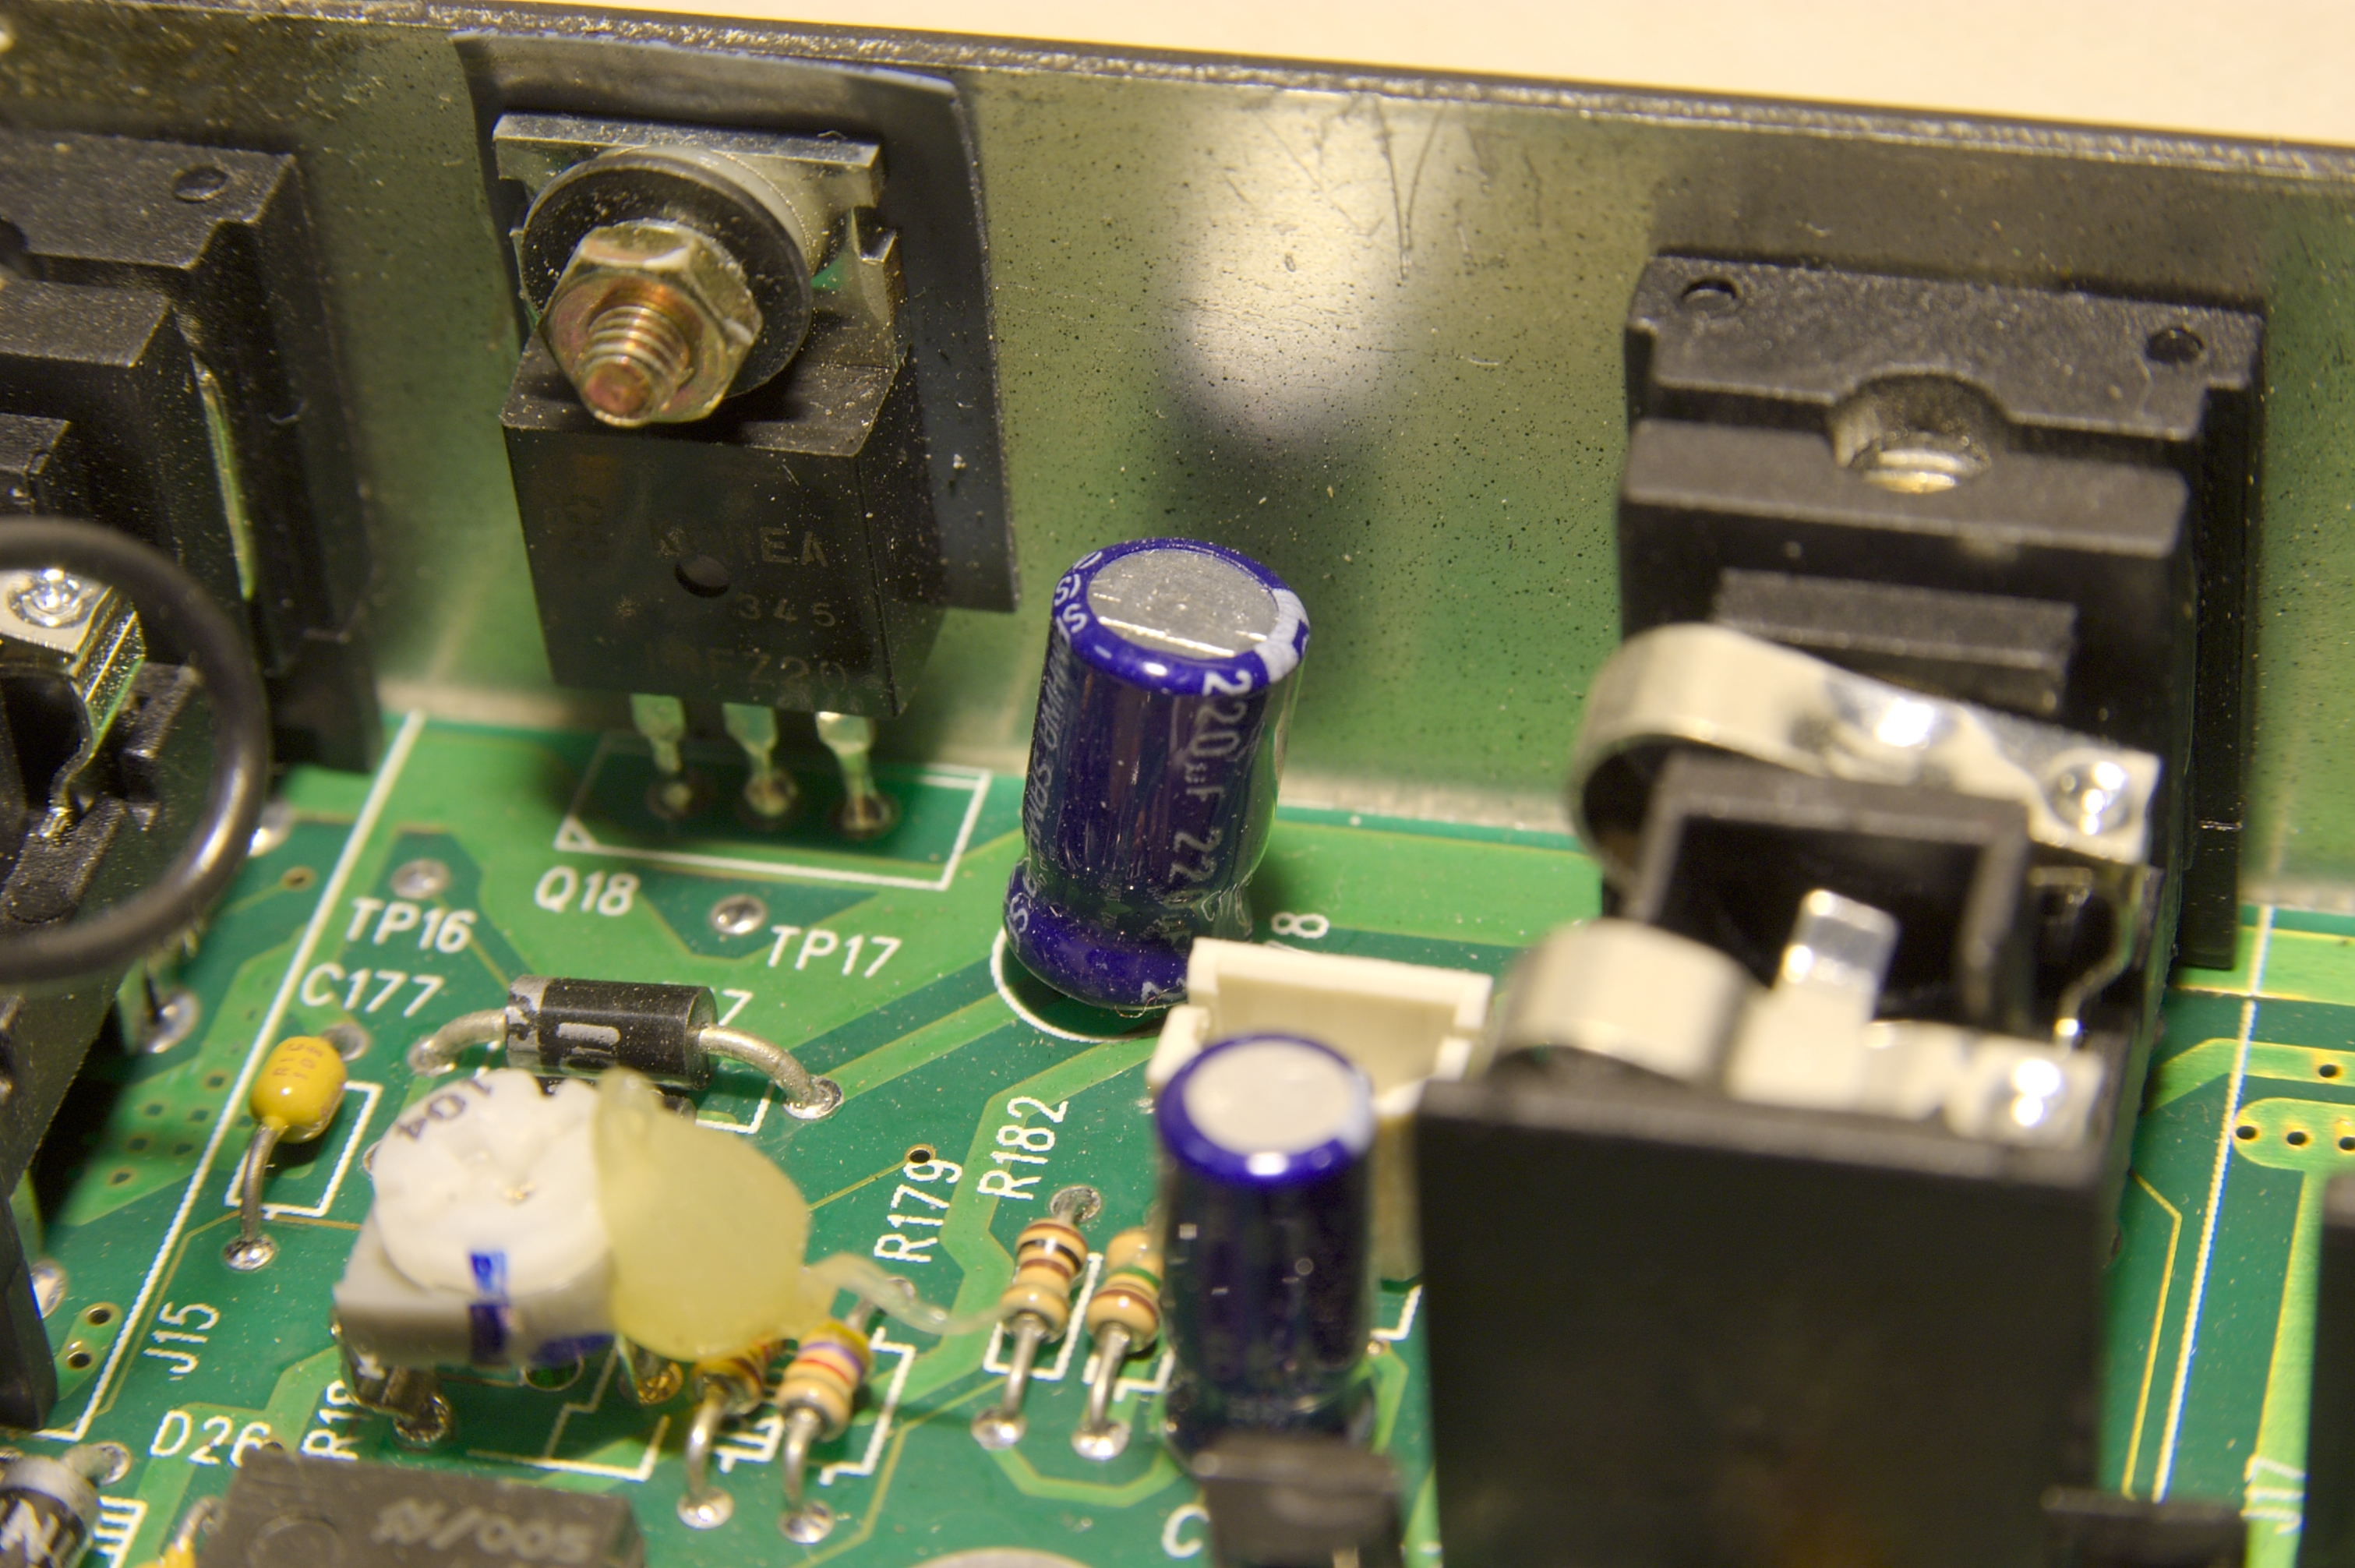 DSC_9930.jpg - This time focused on the furthest capacitor C178 and transistor Q18